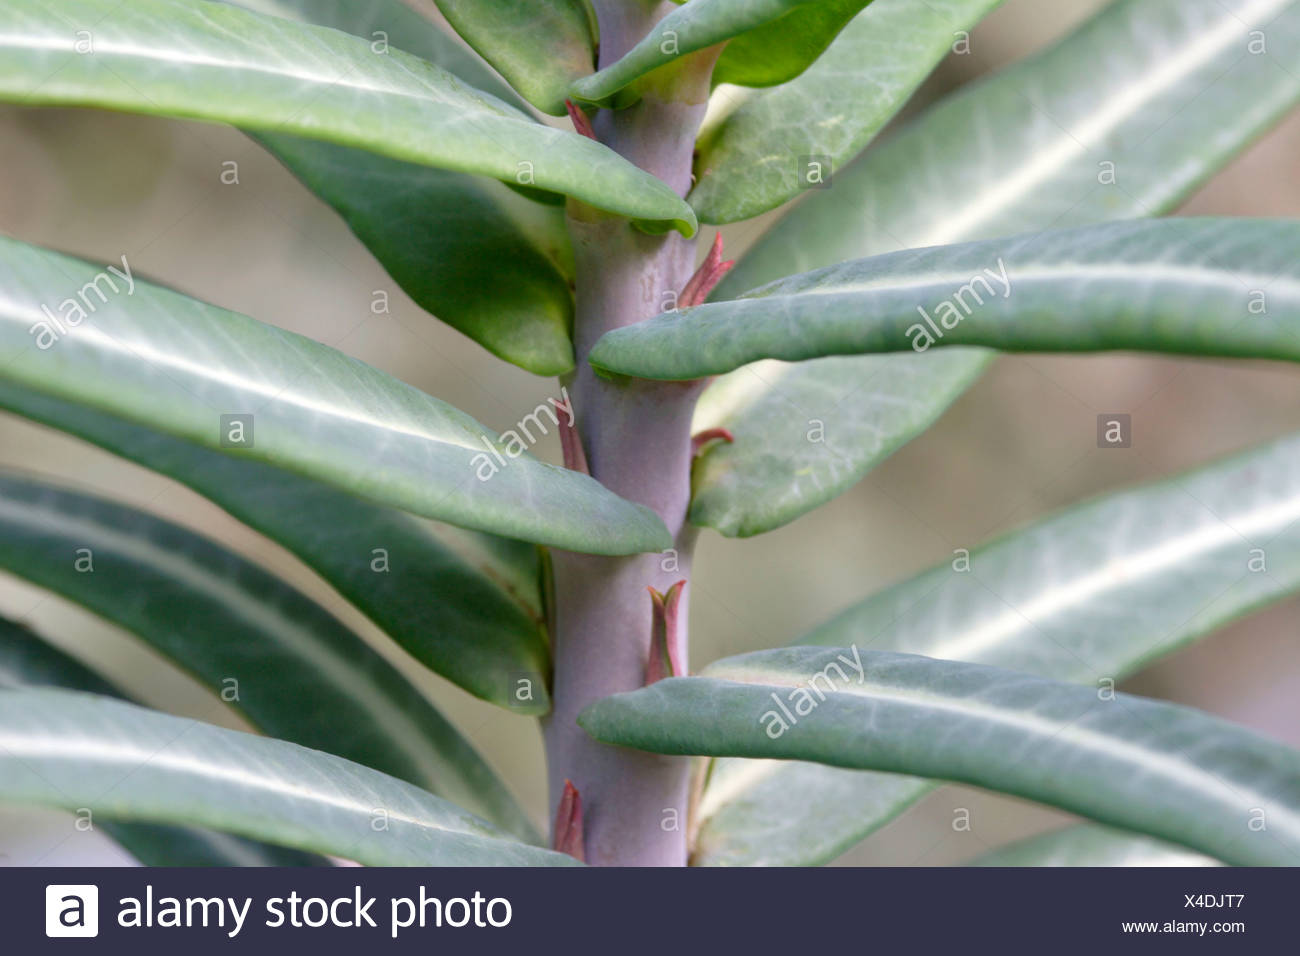 Euphorbia lathyris leaves close up England UK - Stock Image